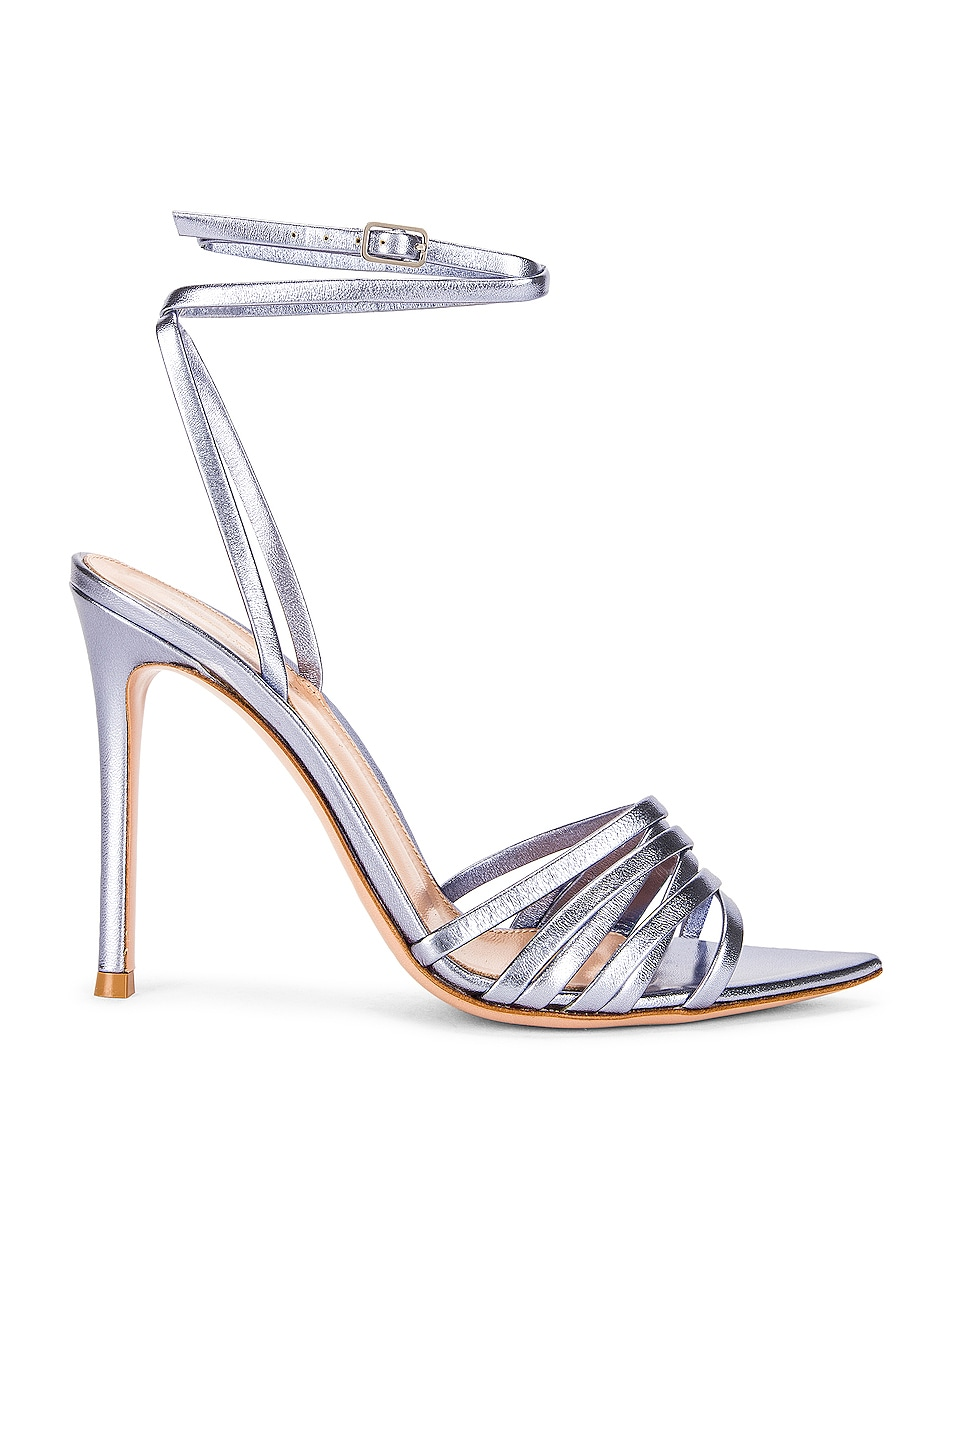 Image 1 of Gianvito Rossi Ankle Strap Sandals in Stonewash